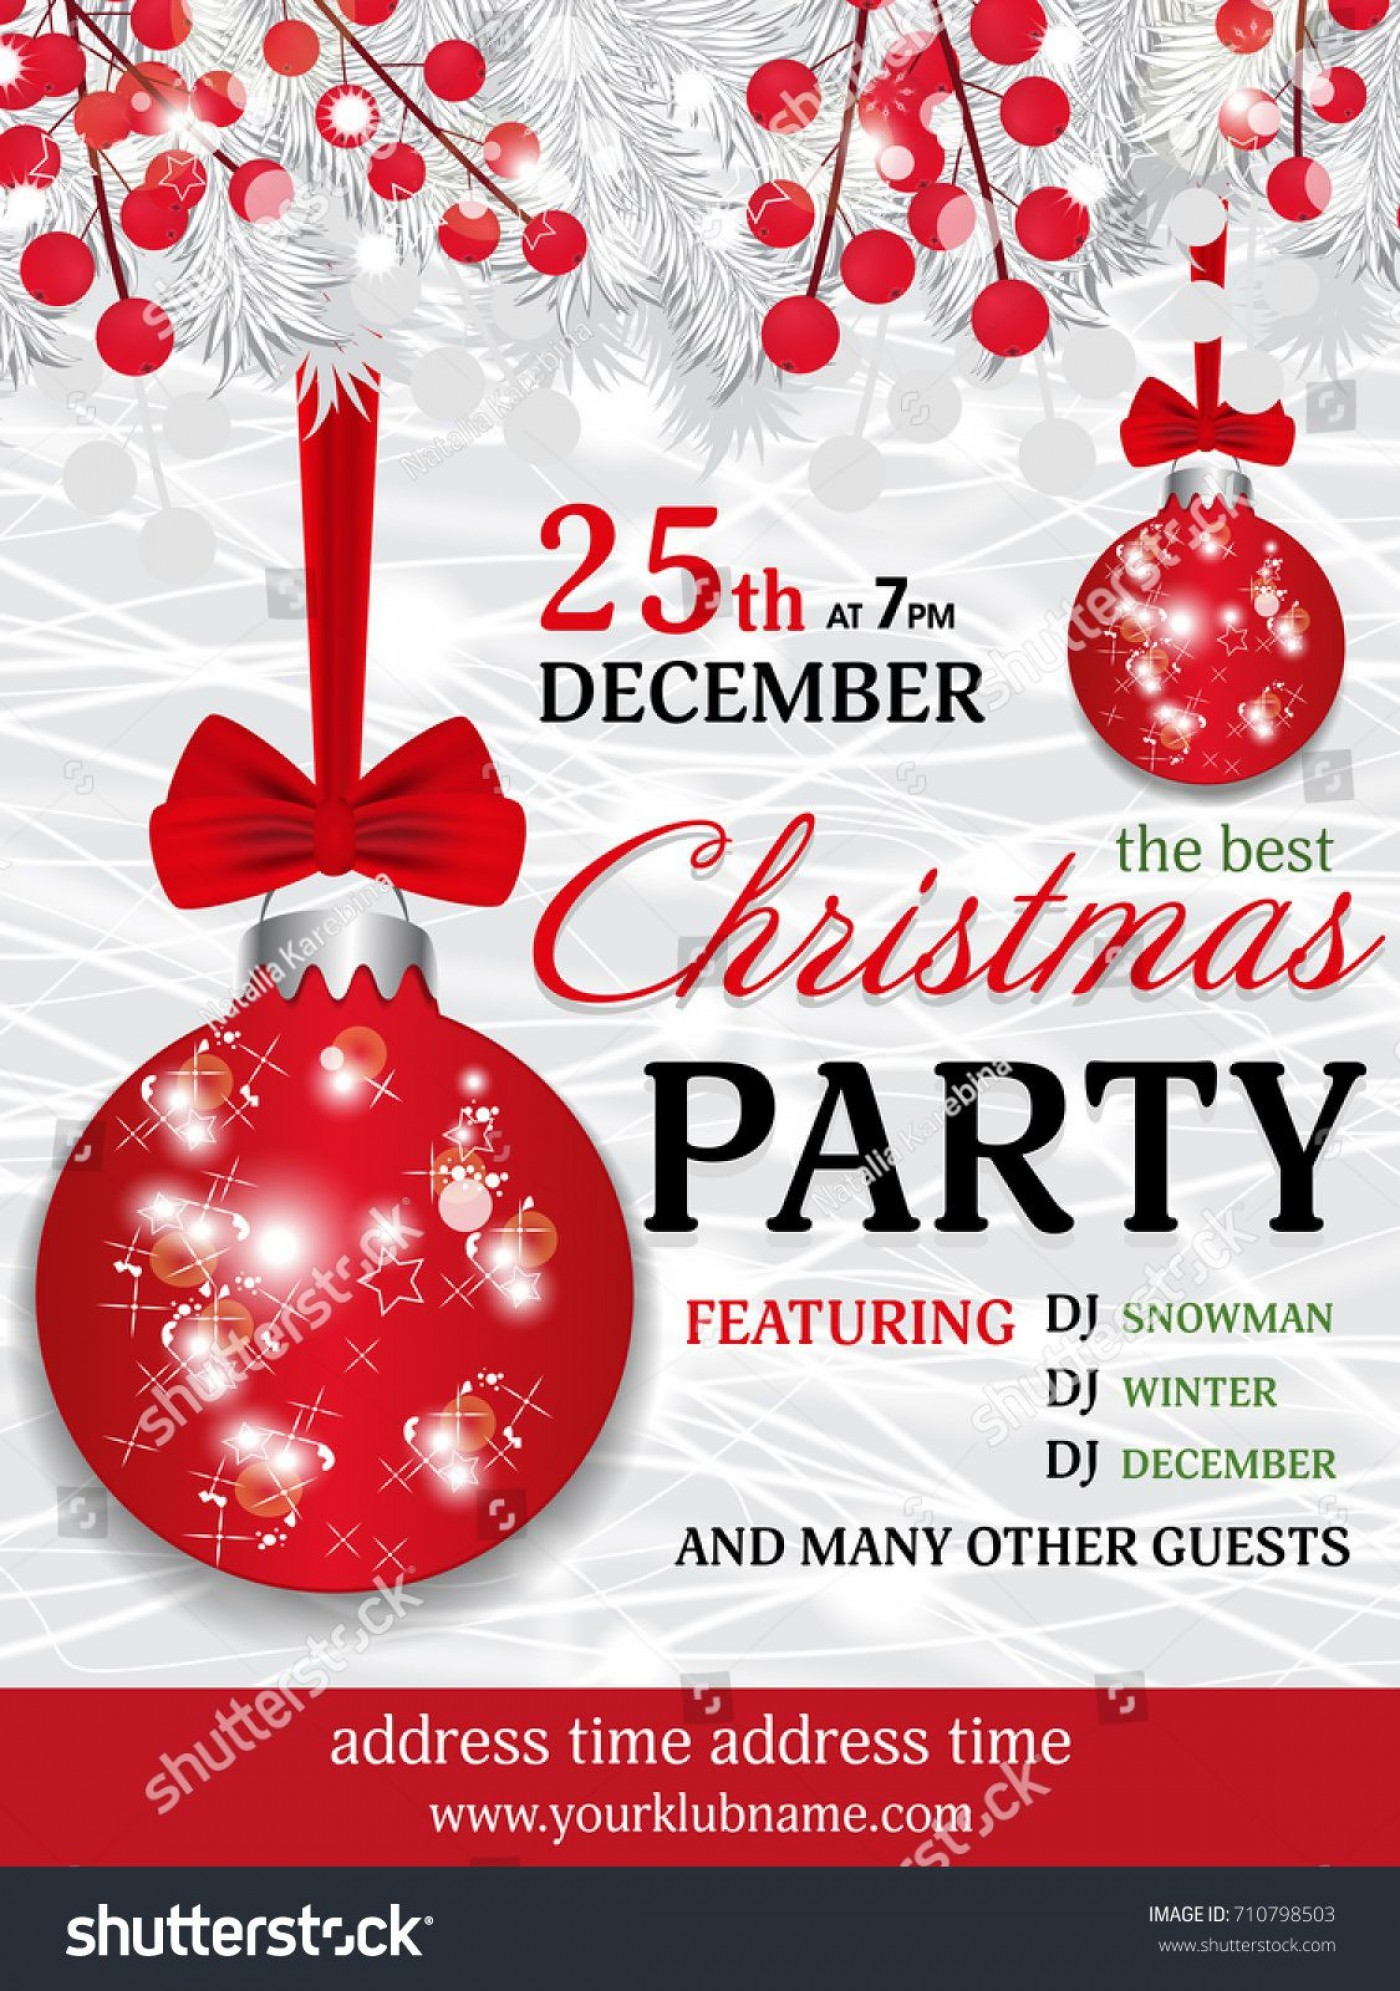 009 Wondrou Christma Party Invitation Template Design  Holiday Download Free Psd1400